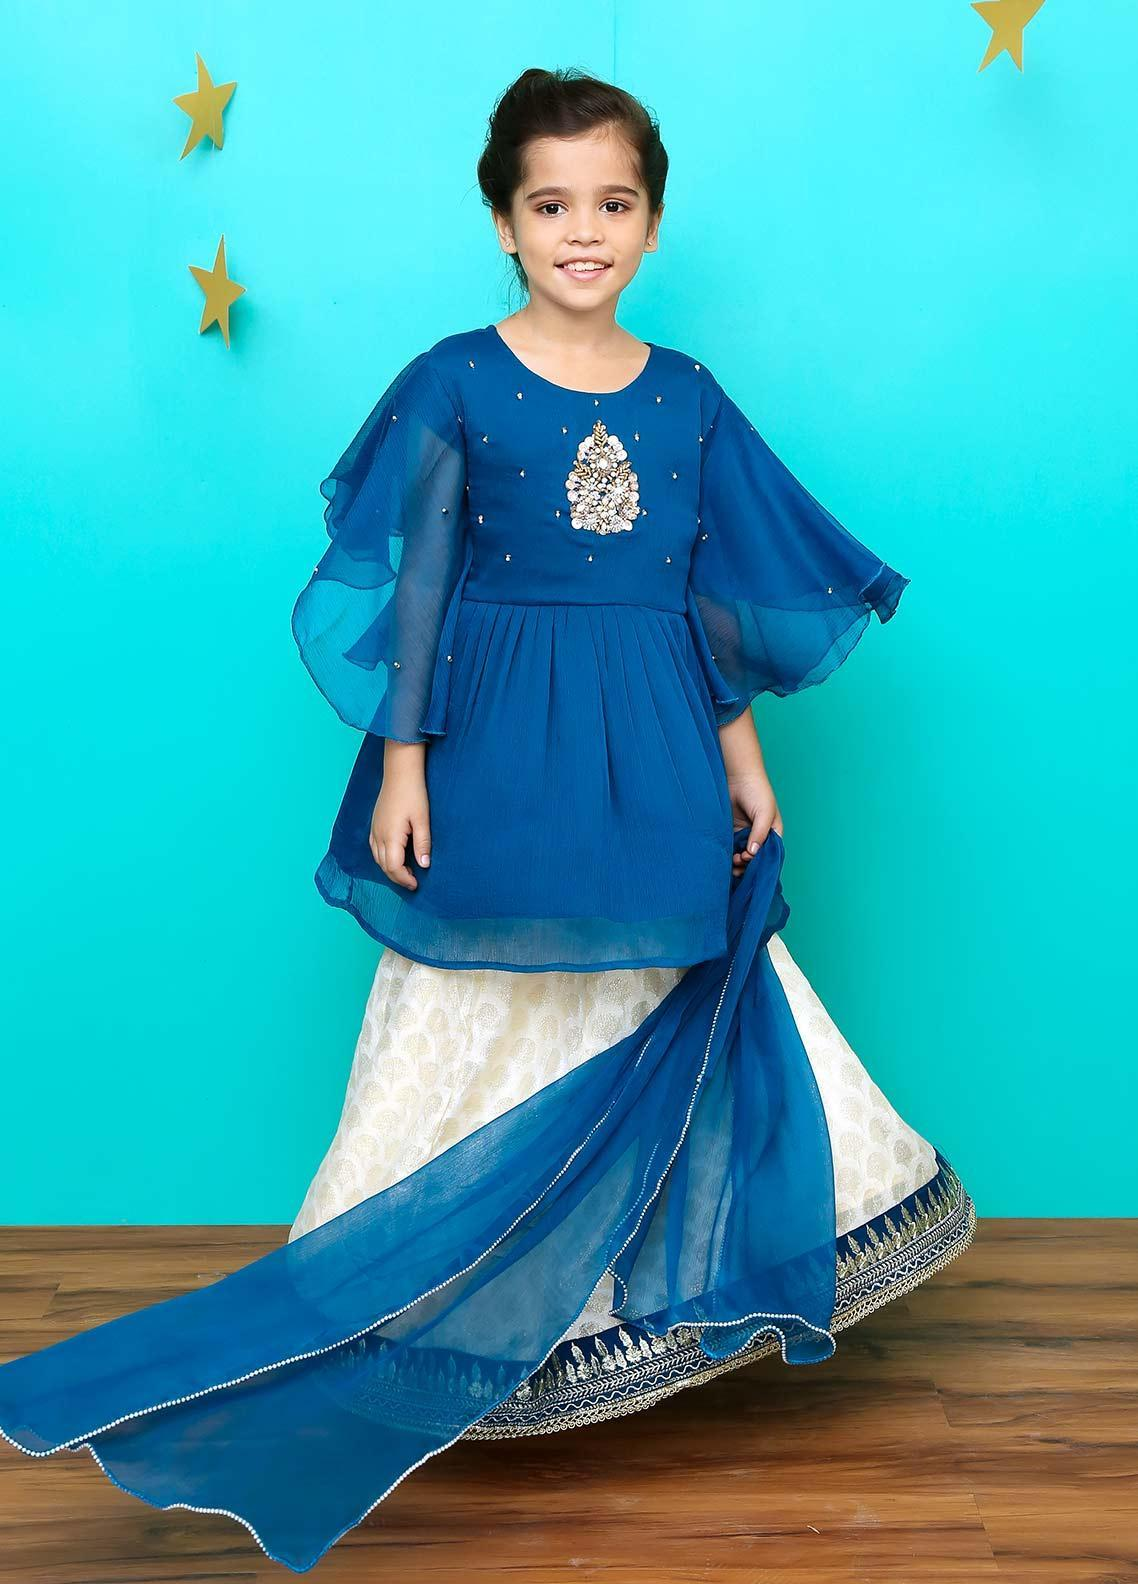 Ochre Chiffon Formal 3 Piece Suit for Girls - OFW 209 Teal Blue